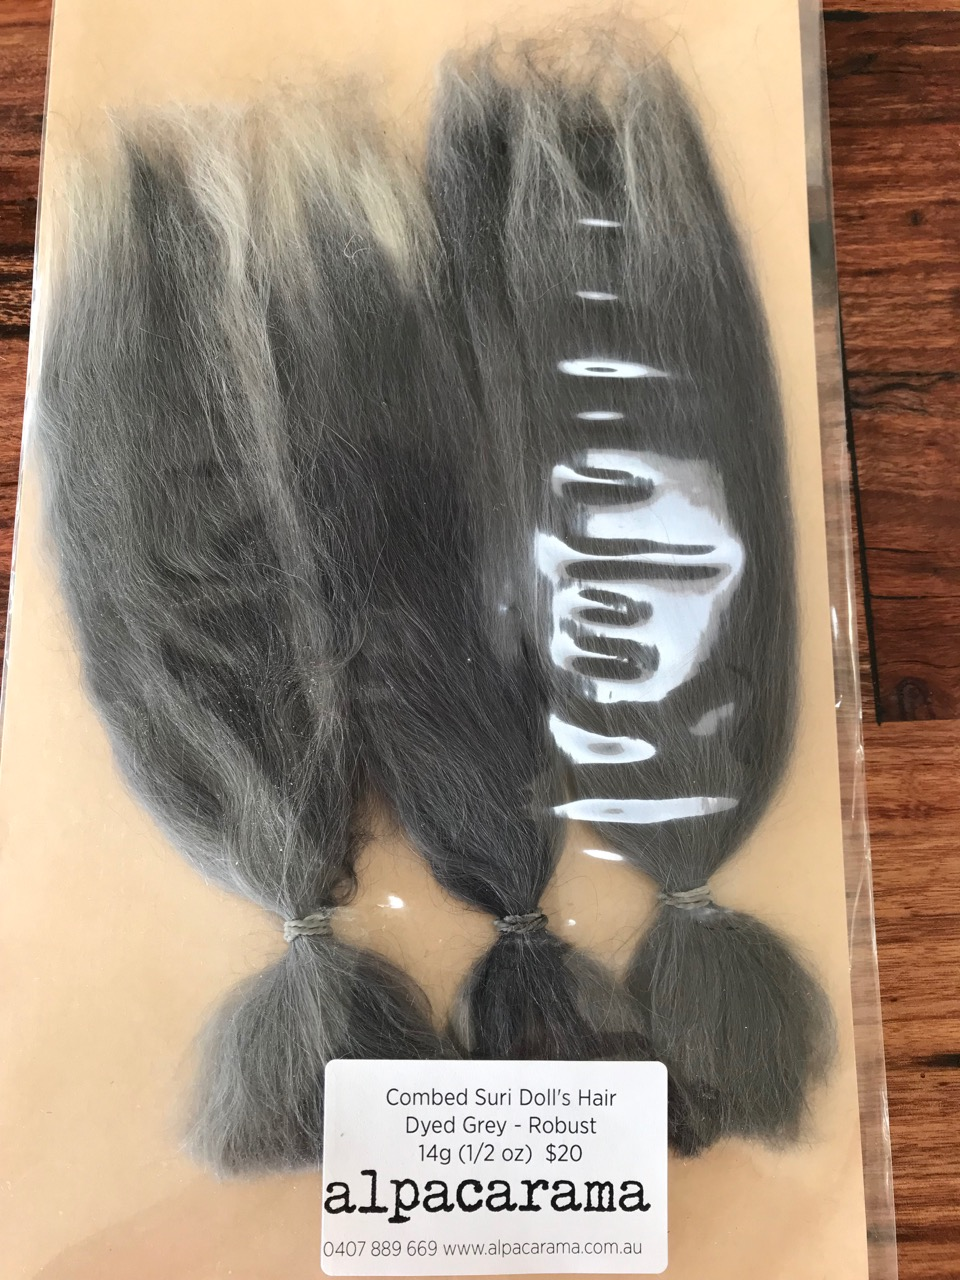 Combed Doll's Hair – Dyed Grey Ombre – Robust